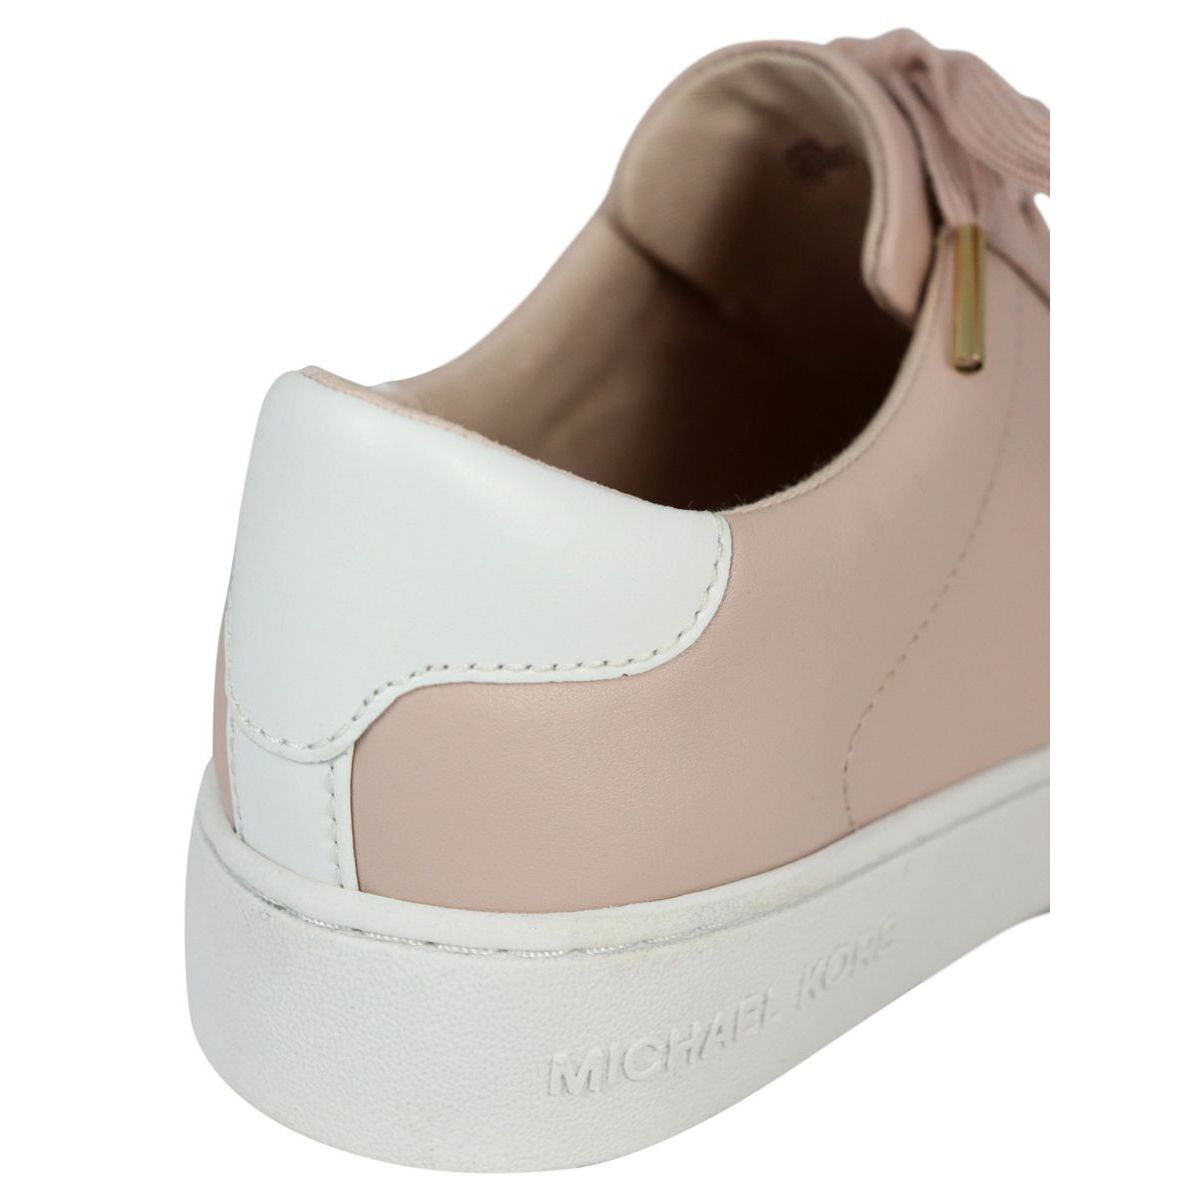 Box-bottom sneakers in pink leather Rose Michael Kors